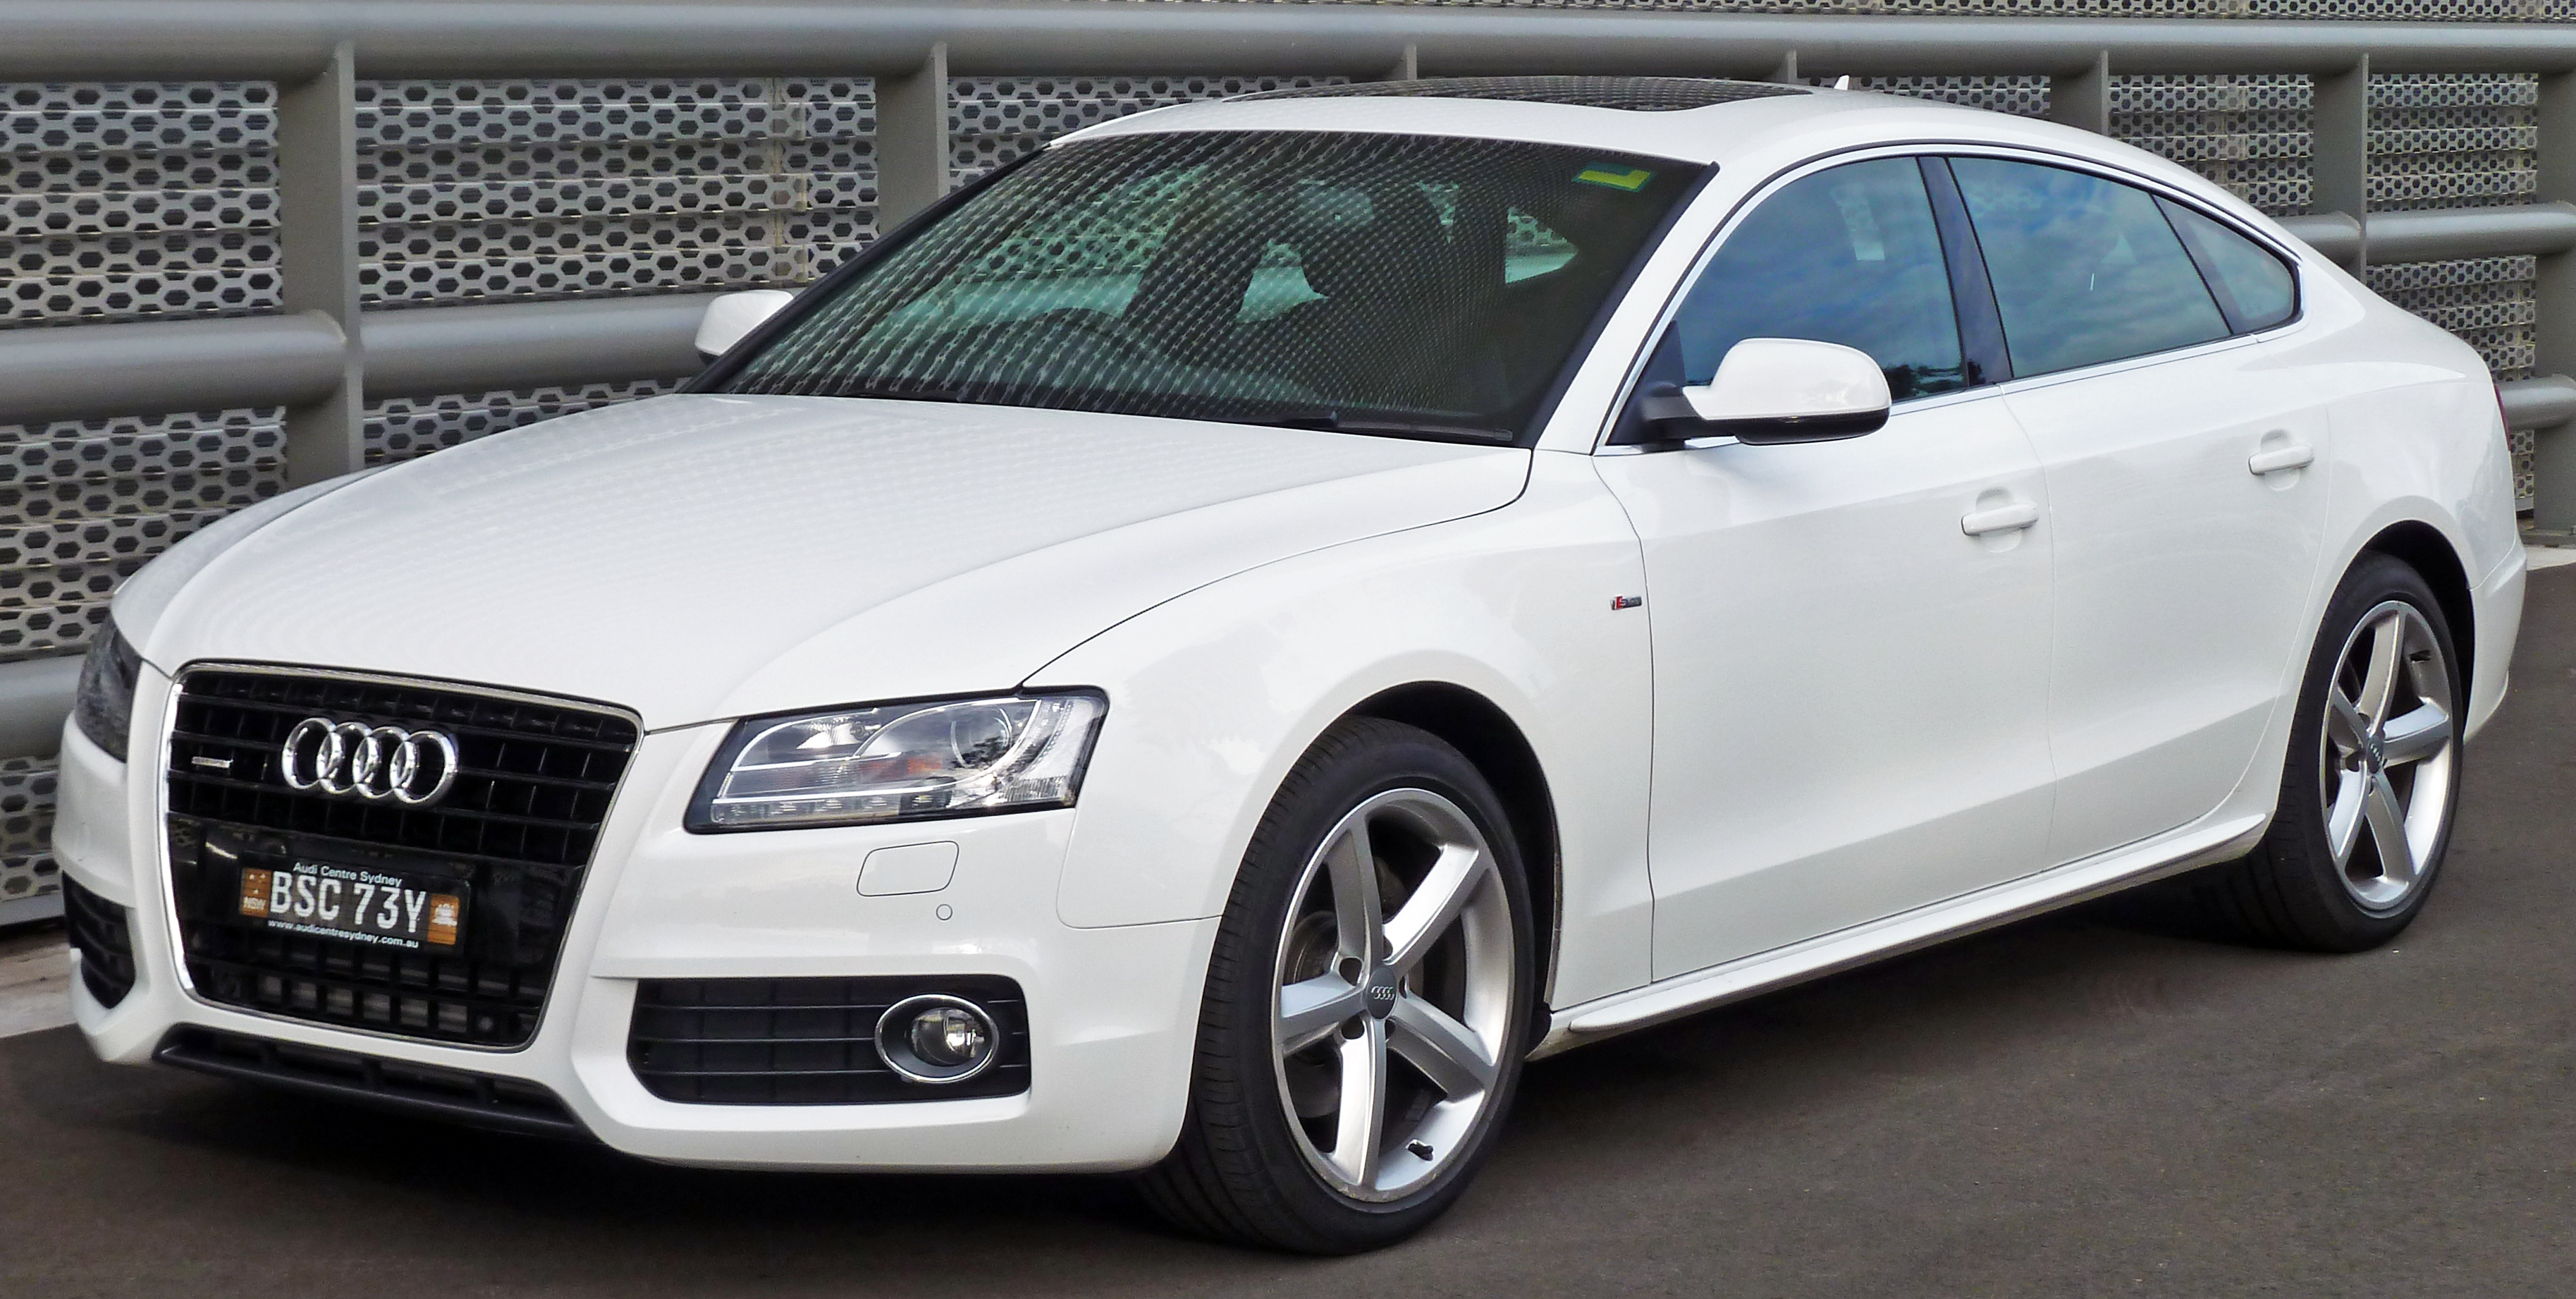 Description 2010 Audi A5 (8T) 3.0 TDI quattro Sportback 03.jpg